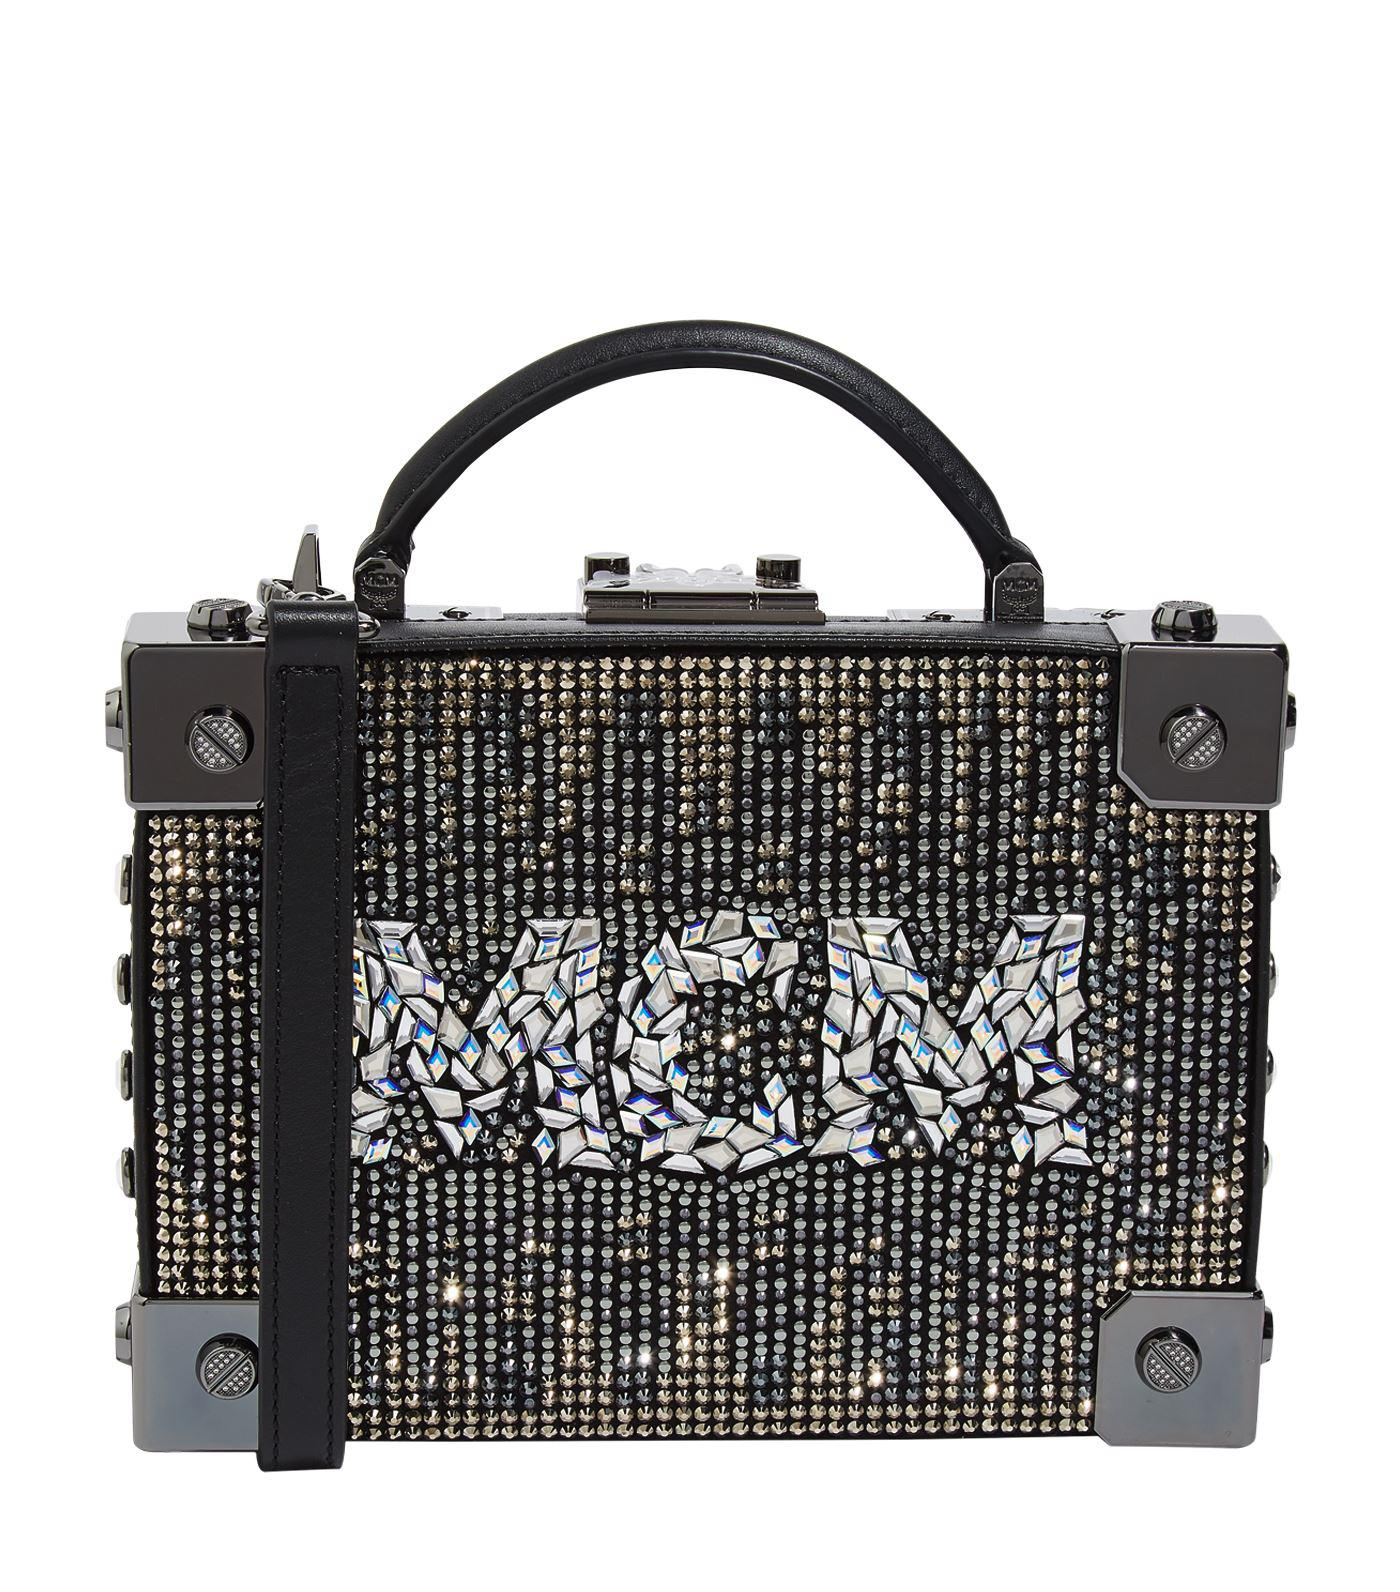 284f126abb Lyst - MCM Berlin Mosaic Crystal Cross Body Bag in Black - Save 11%